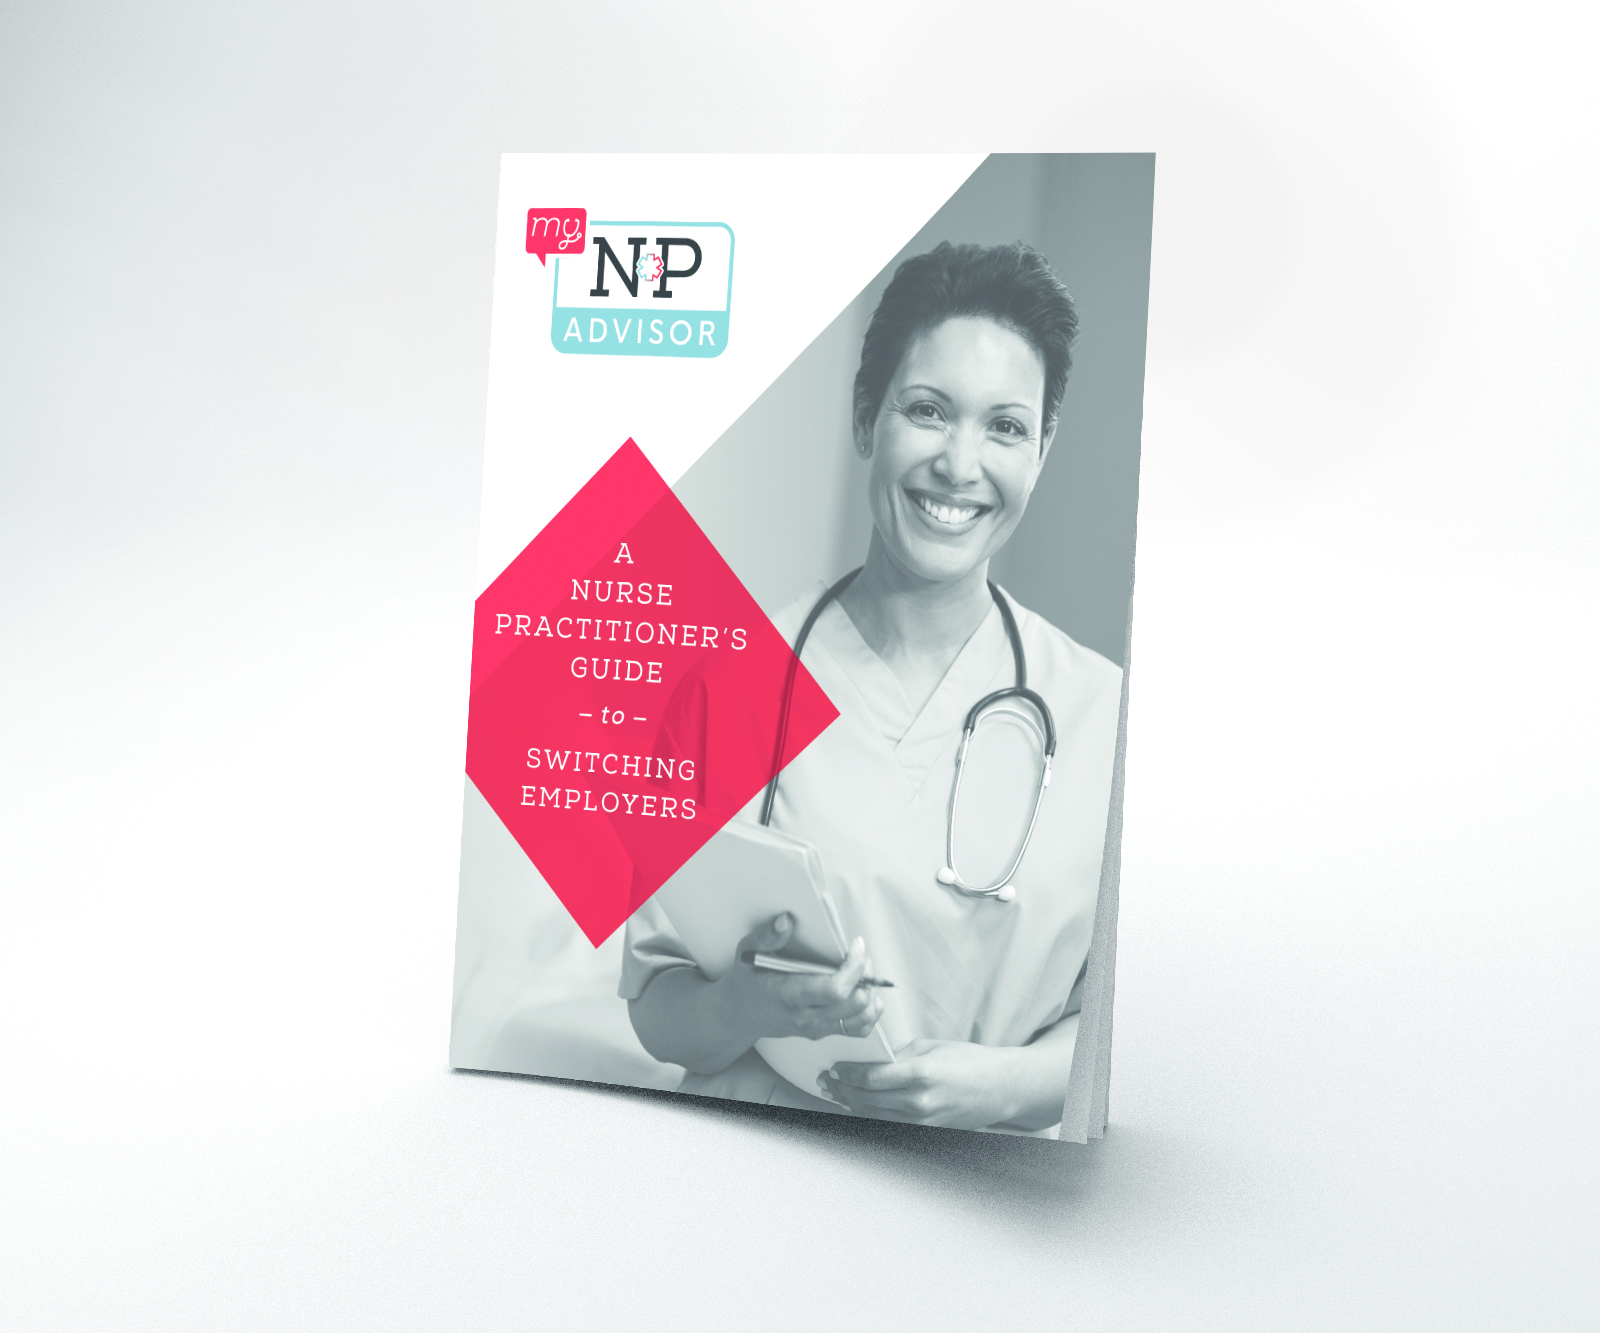 """The cover of My NP Advisor's eBook """"Nurse Practitioner's Guide to Switching Employers"""""""